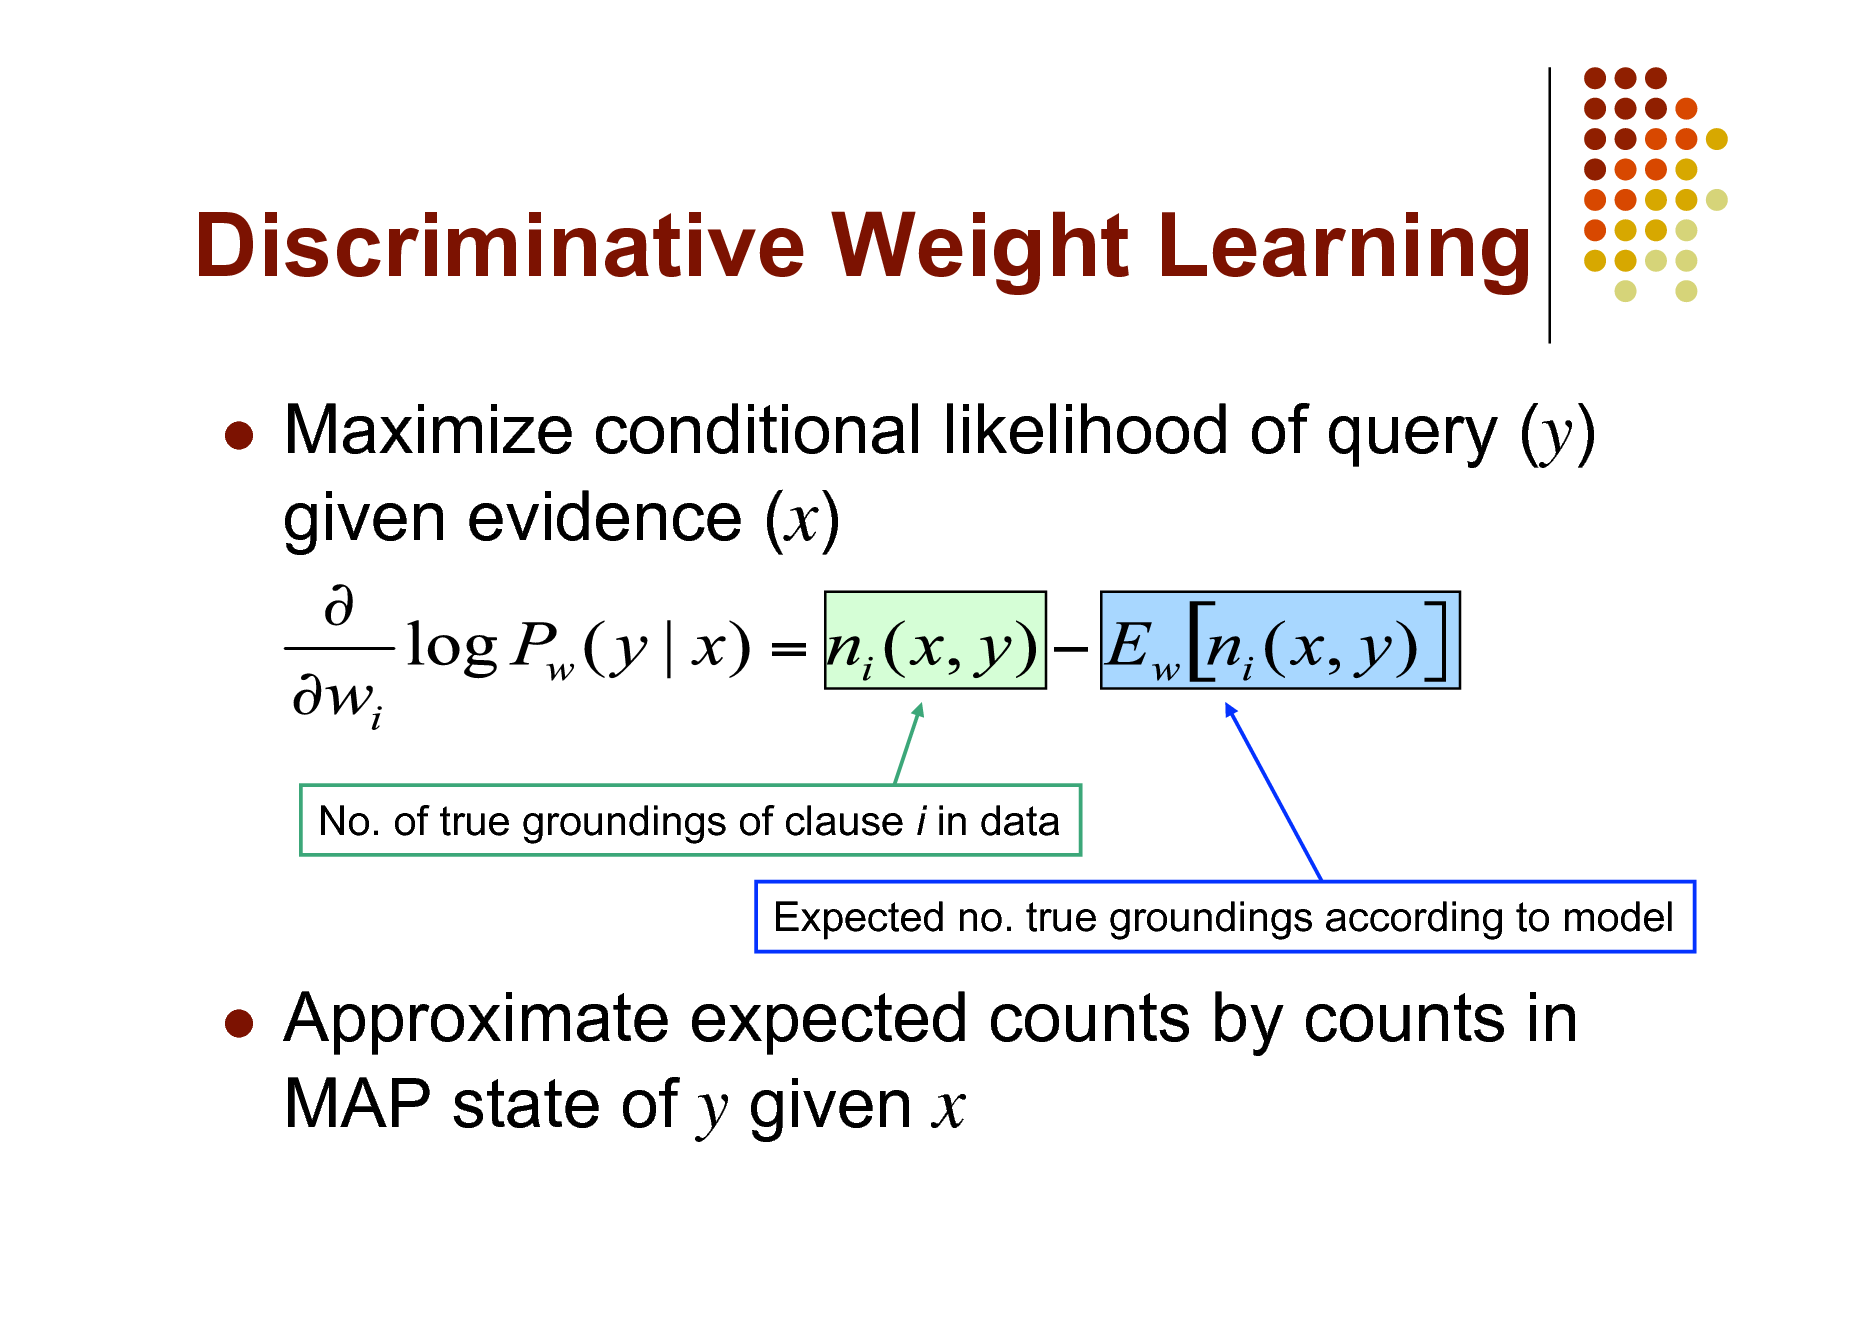 Slide: Discriminative Weight Learning   Maximize conditional likelihood of query (y) given evidence (x)  No. of true groundings of clause i in data Expected no. true groundings according to model    Approximate expected counts by counts in MAP state of y given x